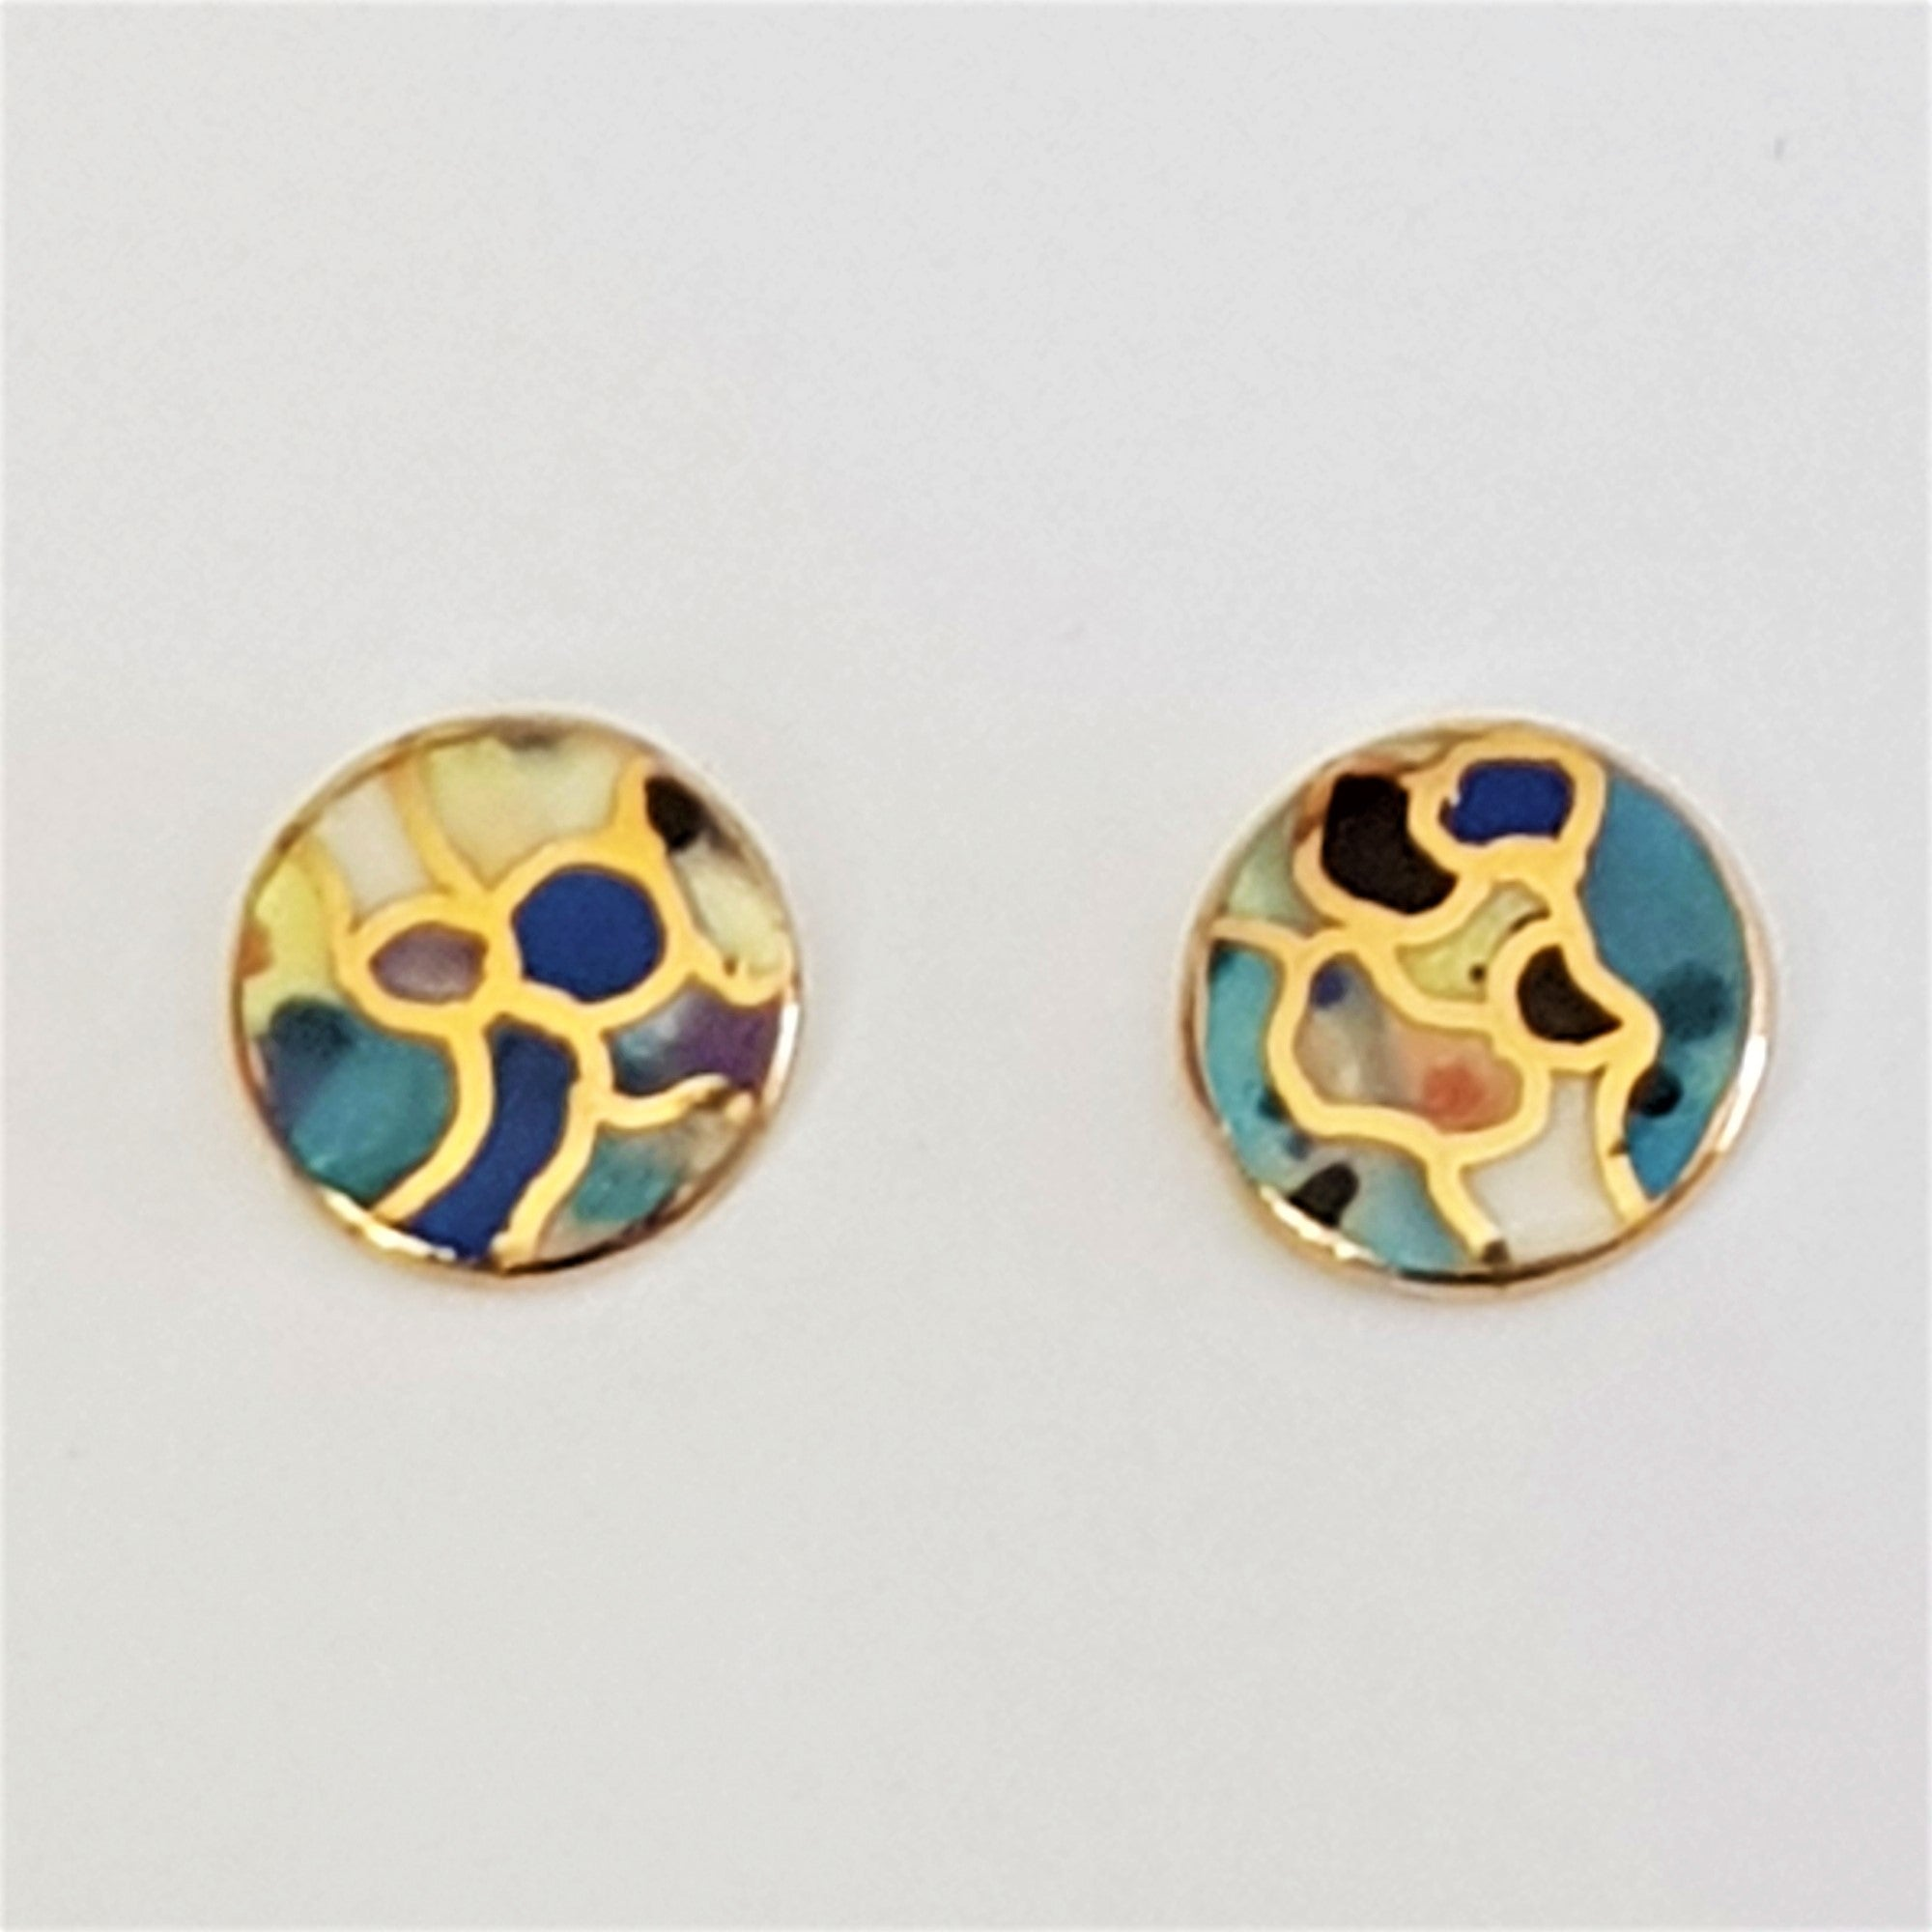 round multi-coloured tiny porcelain studs with gold detail